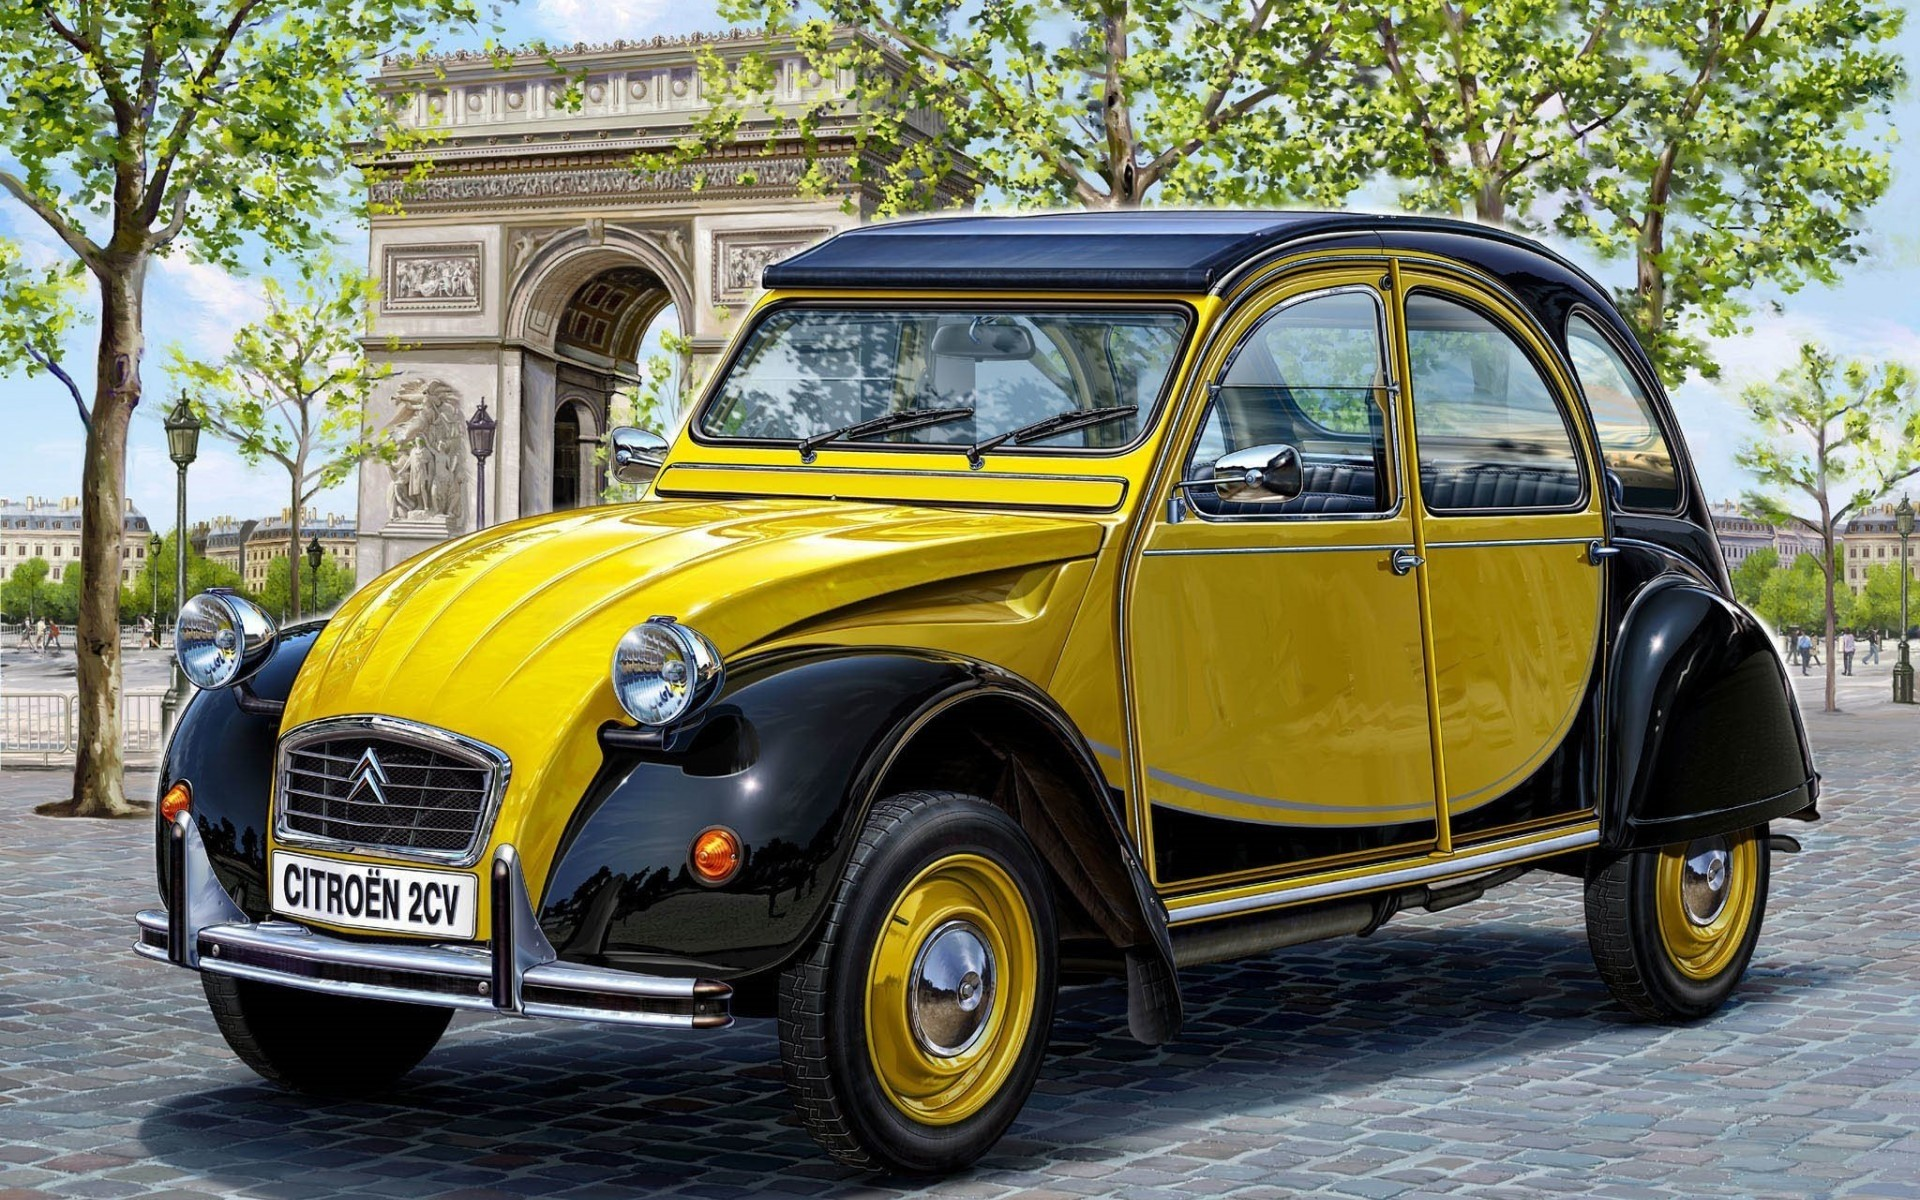 citroen car vehicle transportation system drive fast wheel road automotive traffic classic citroen 2cv vintage cars classic cars old cars